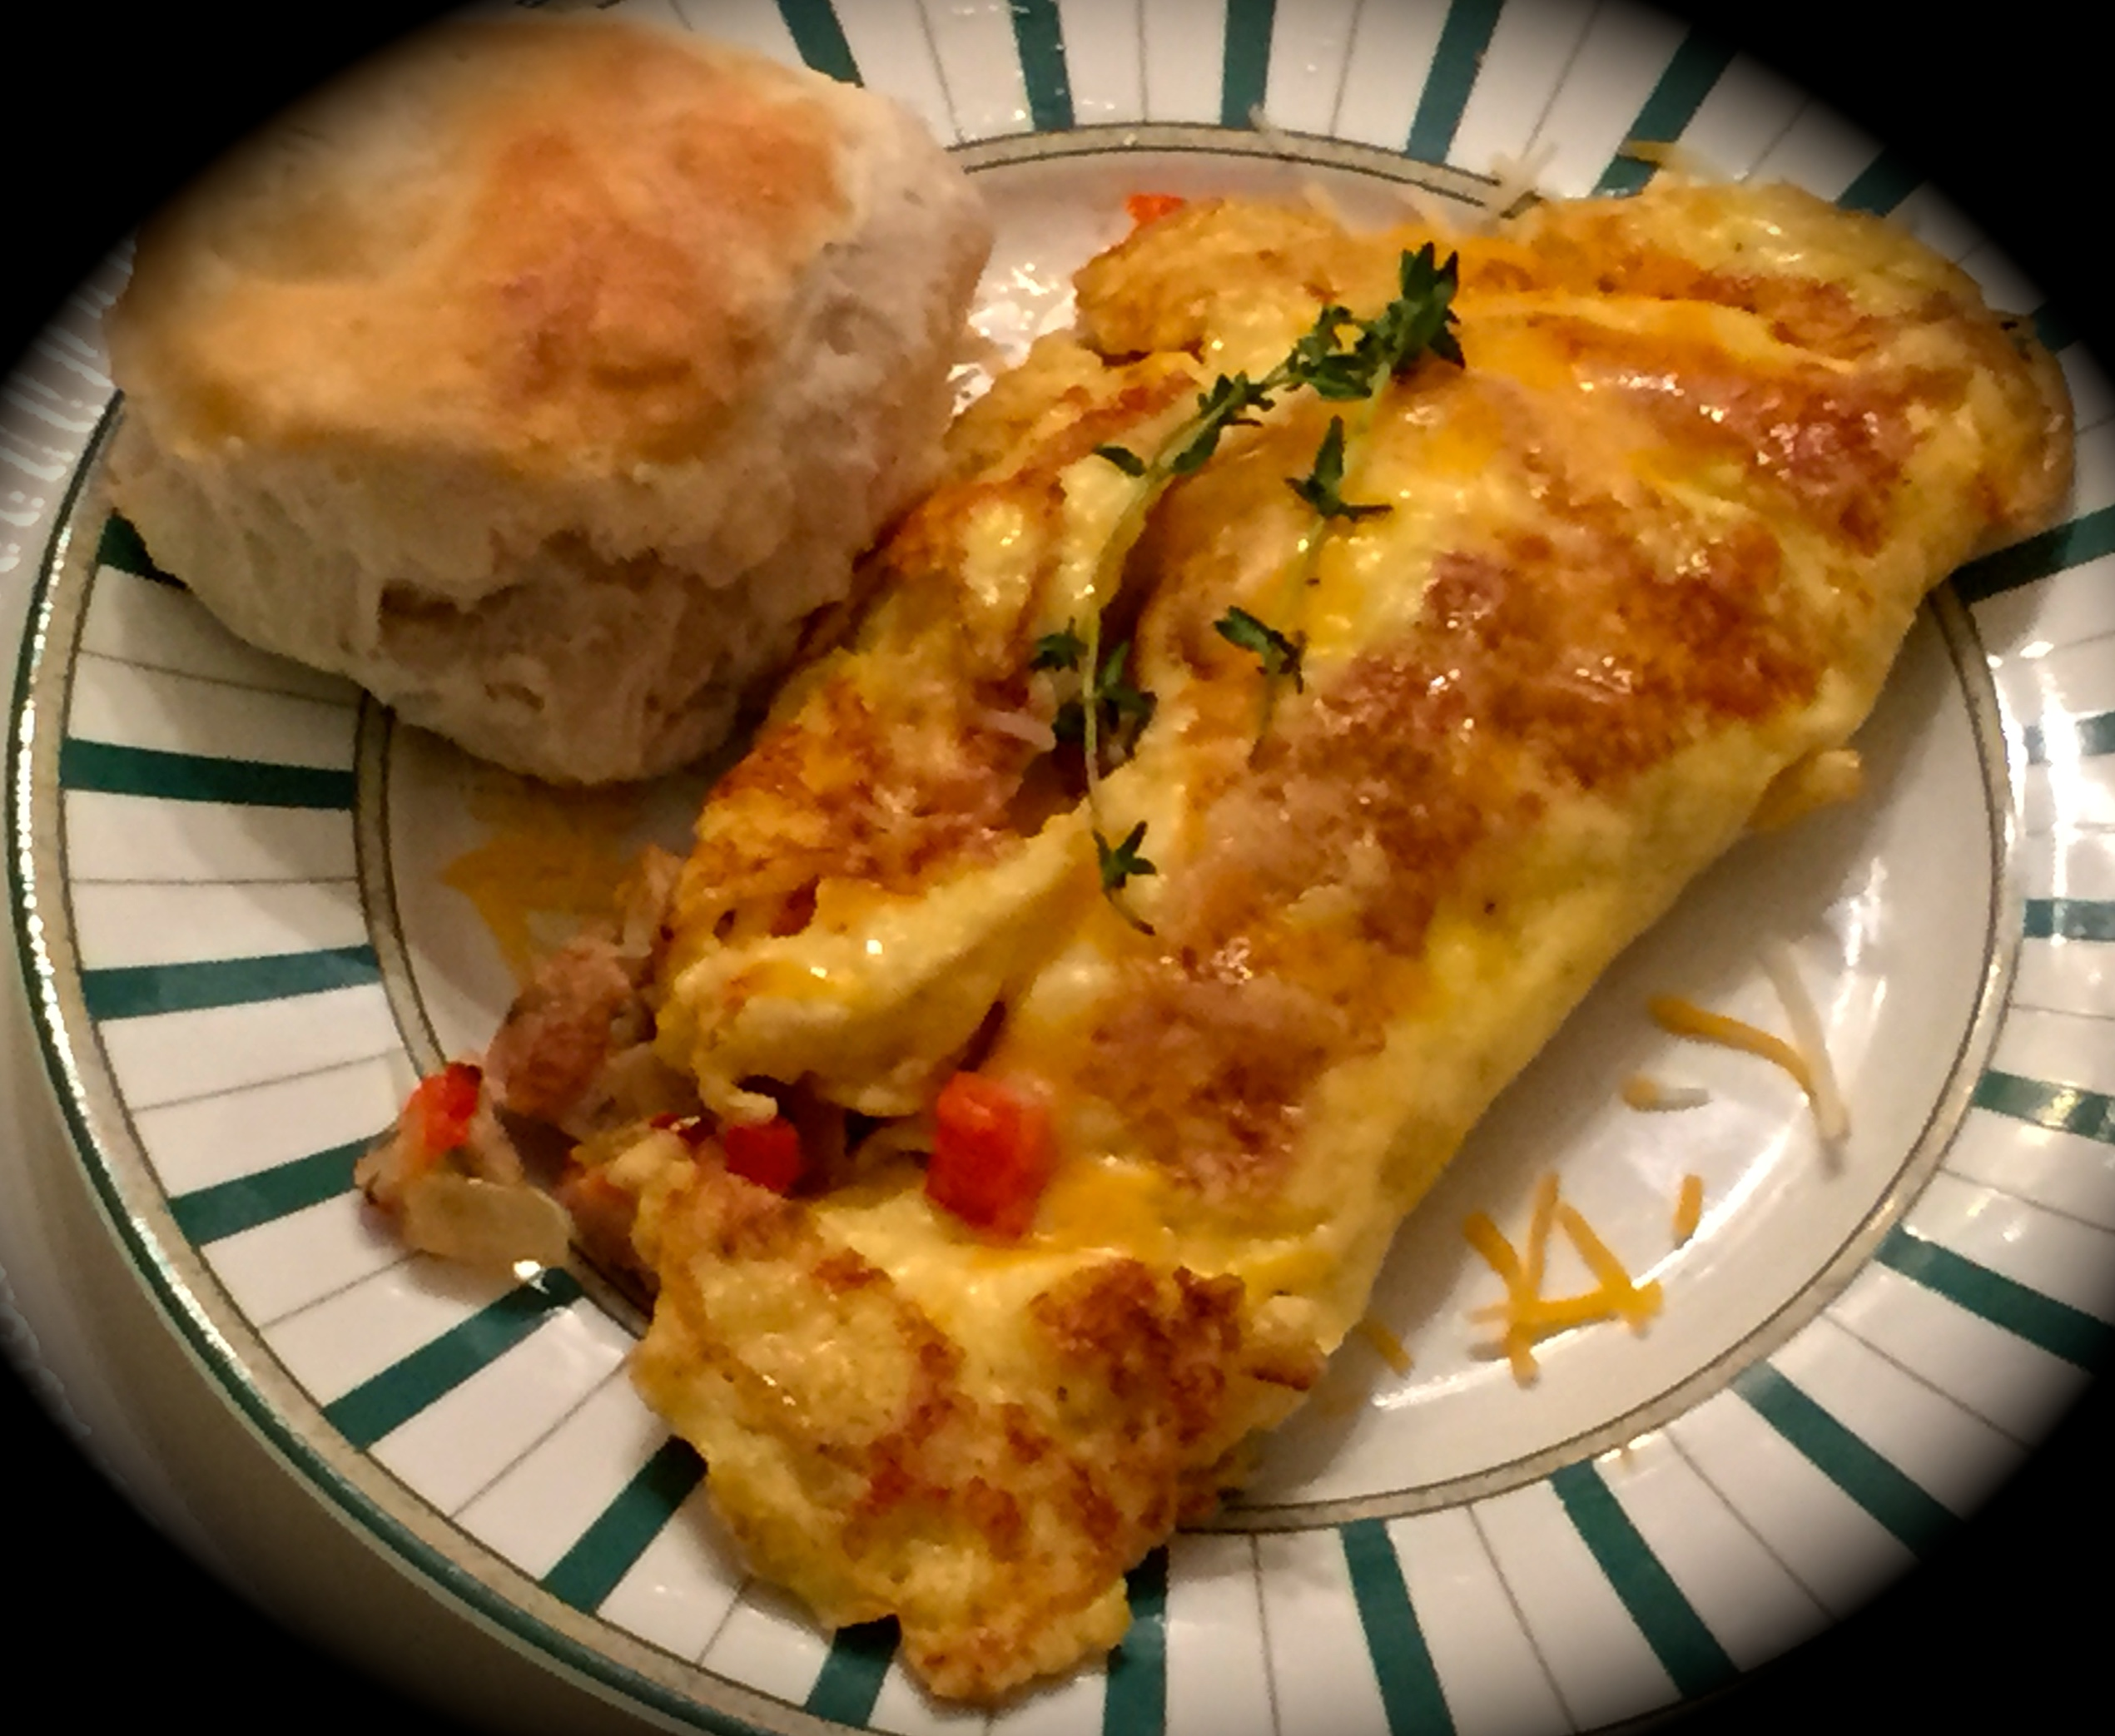 omelet featuring diced fowl meatball